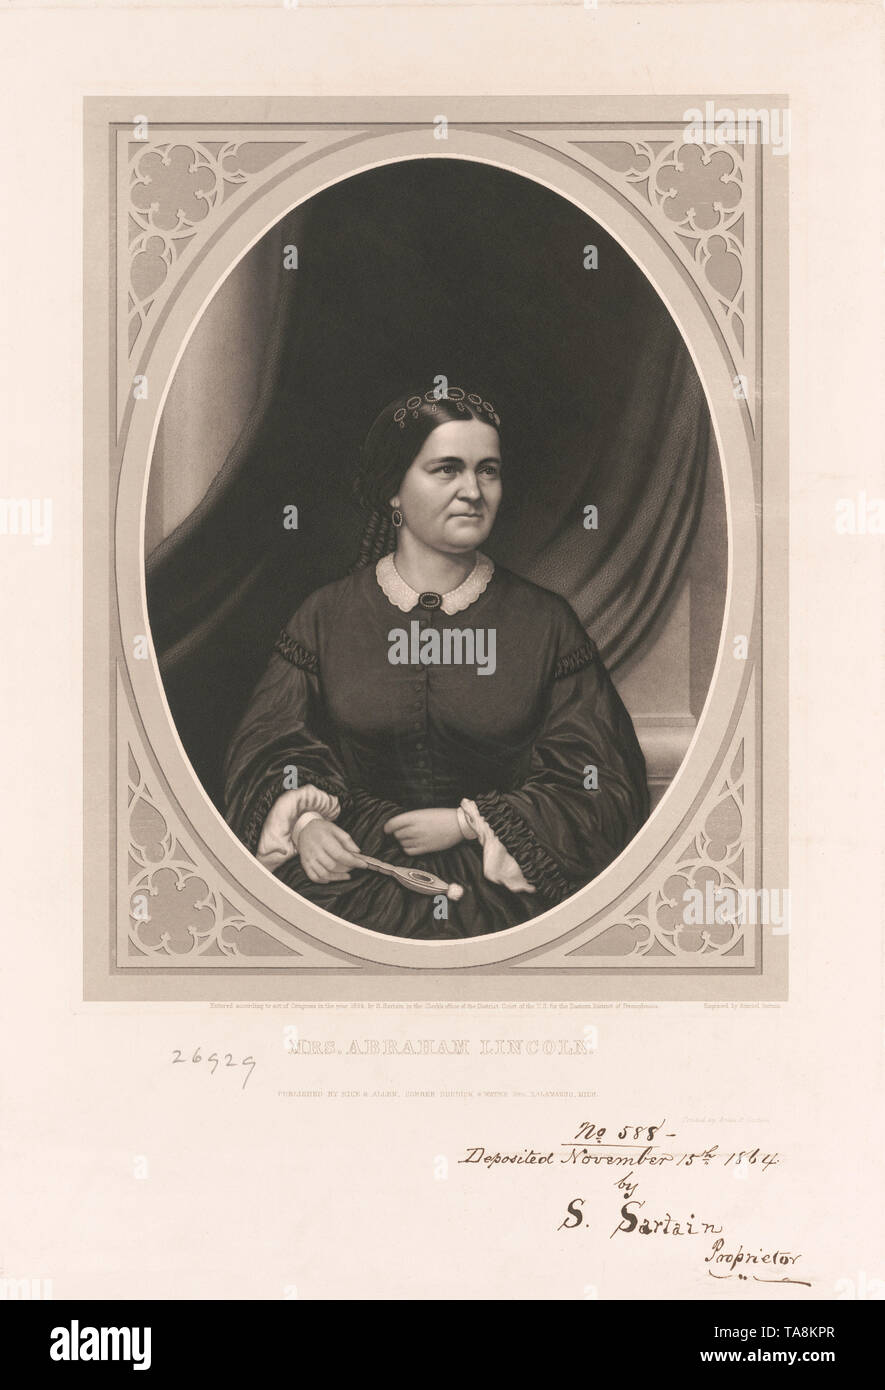 Half-Length Portrait of Mrs. Abraham Lincoln, Engraving by Samuel Sartain, Published by Rice & Allen, 1864 - Stock Image